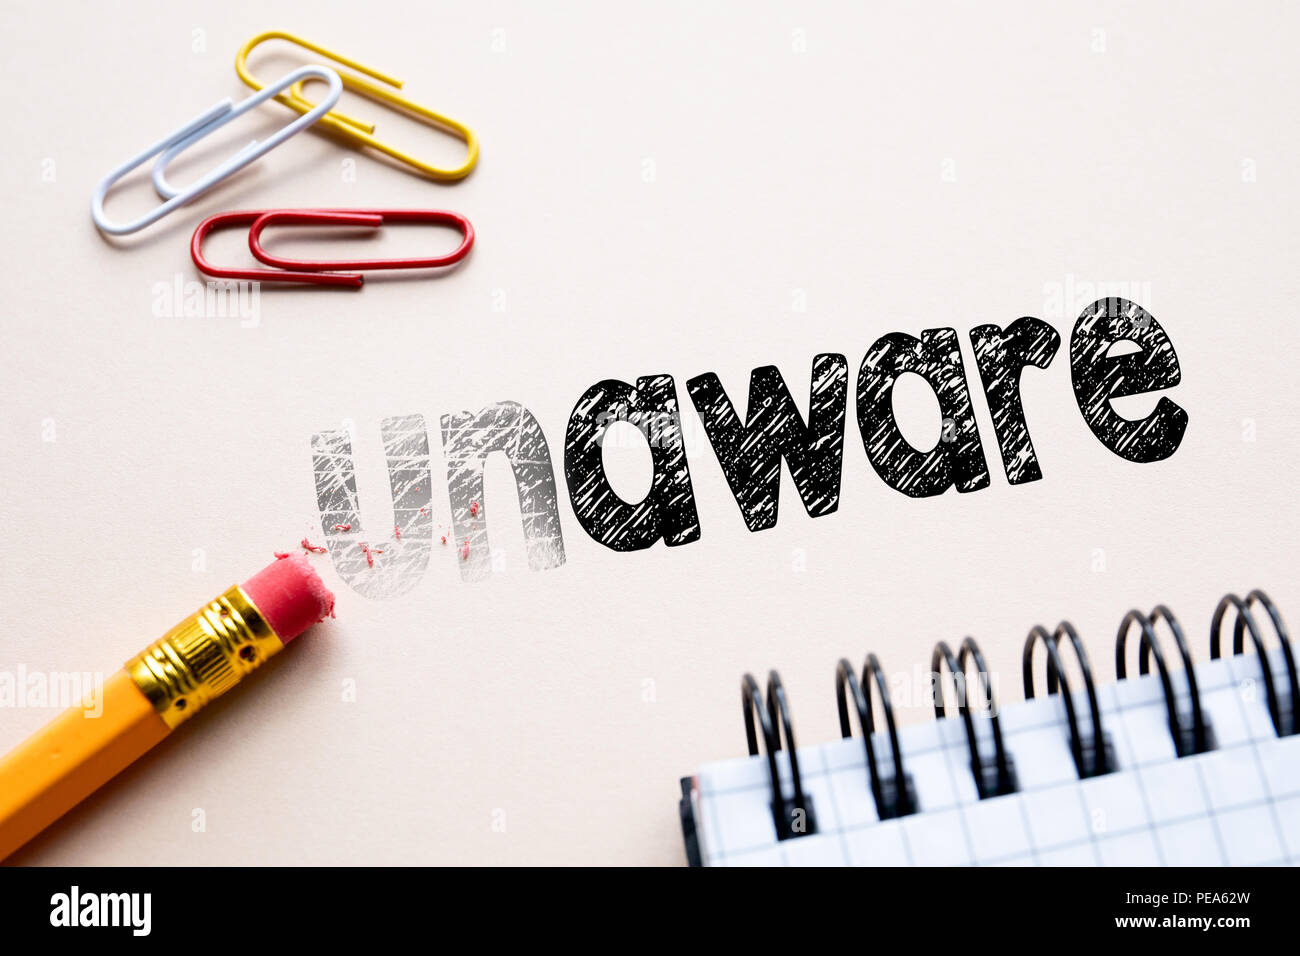 Making unaware in to aware by eraser - Stock Image